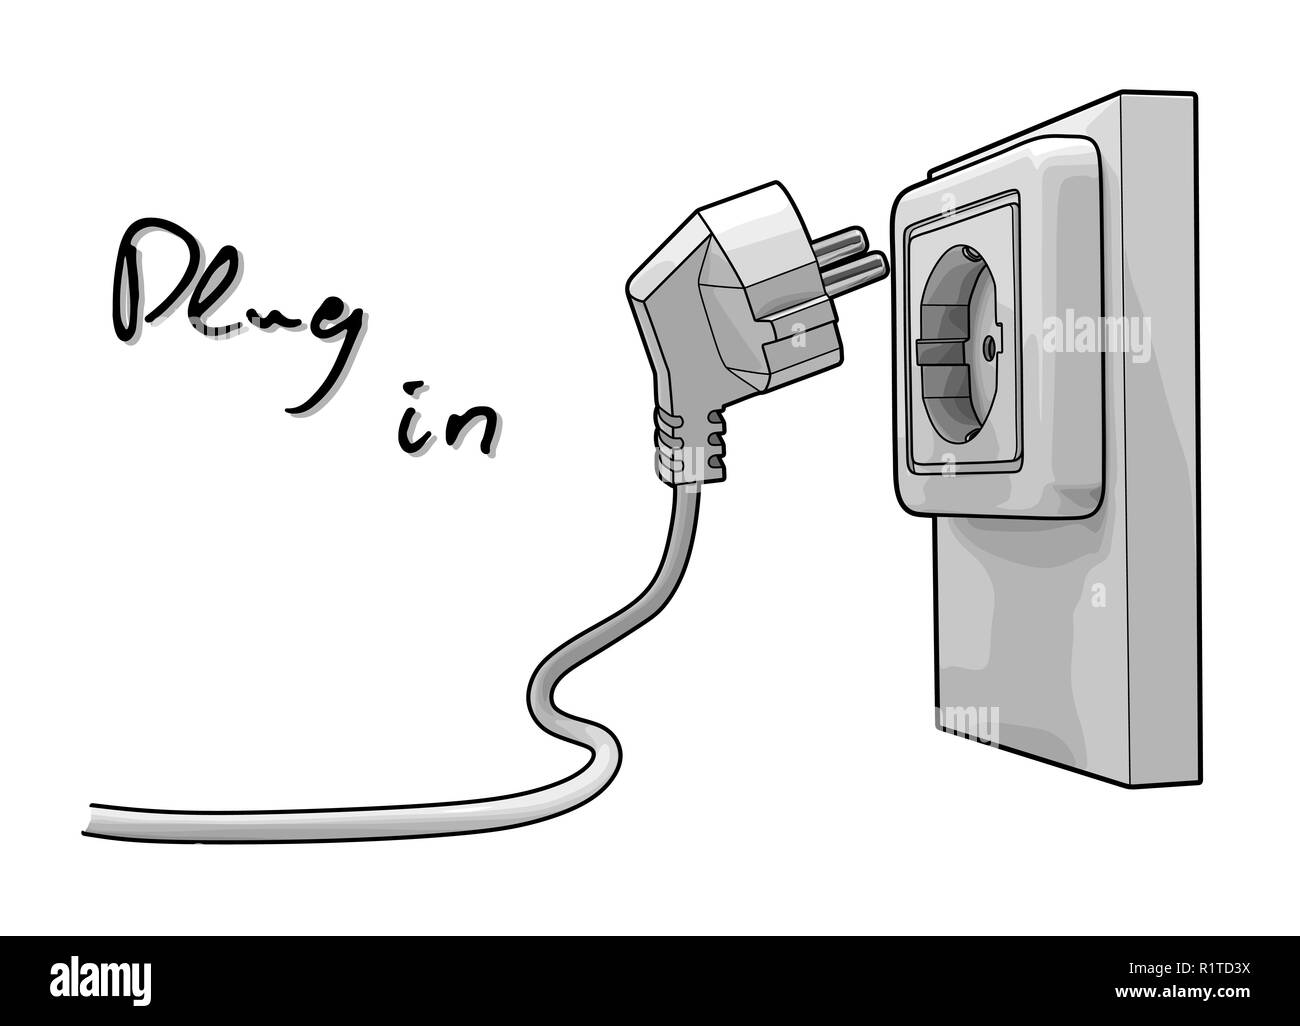 Electric Plug Black And White Stock Photos Images Alamy Simple Electrical Wiring Diagrams Wall Socket Electricity Vector Draw Image